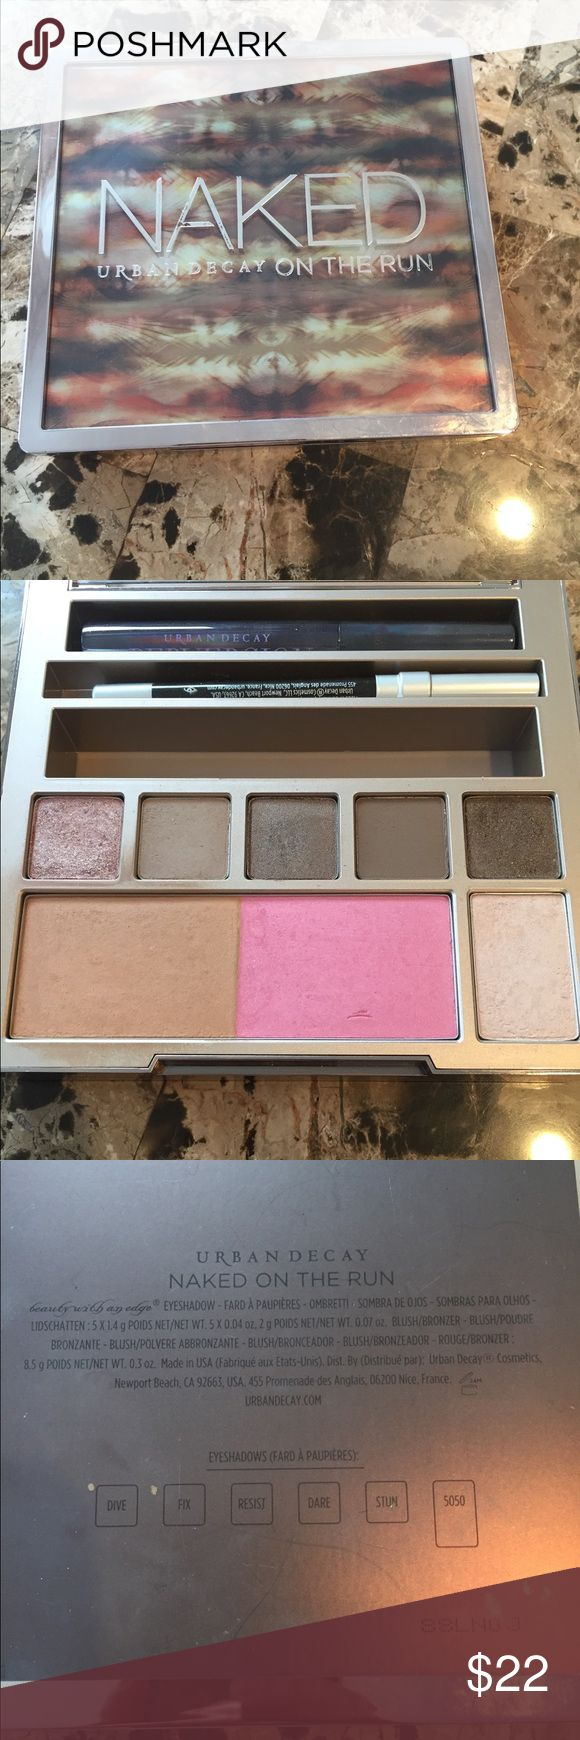 Urban Decay on the run palette Very lightly used. New mascara and eyeliner unused. Lip gloss is missing. Disinfected. Makeup Eyeshadow